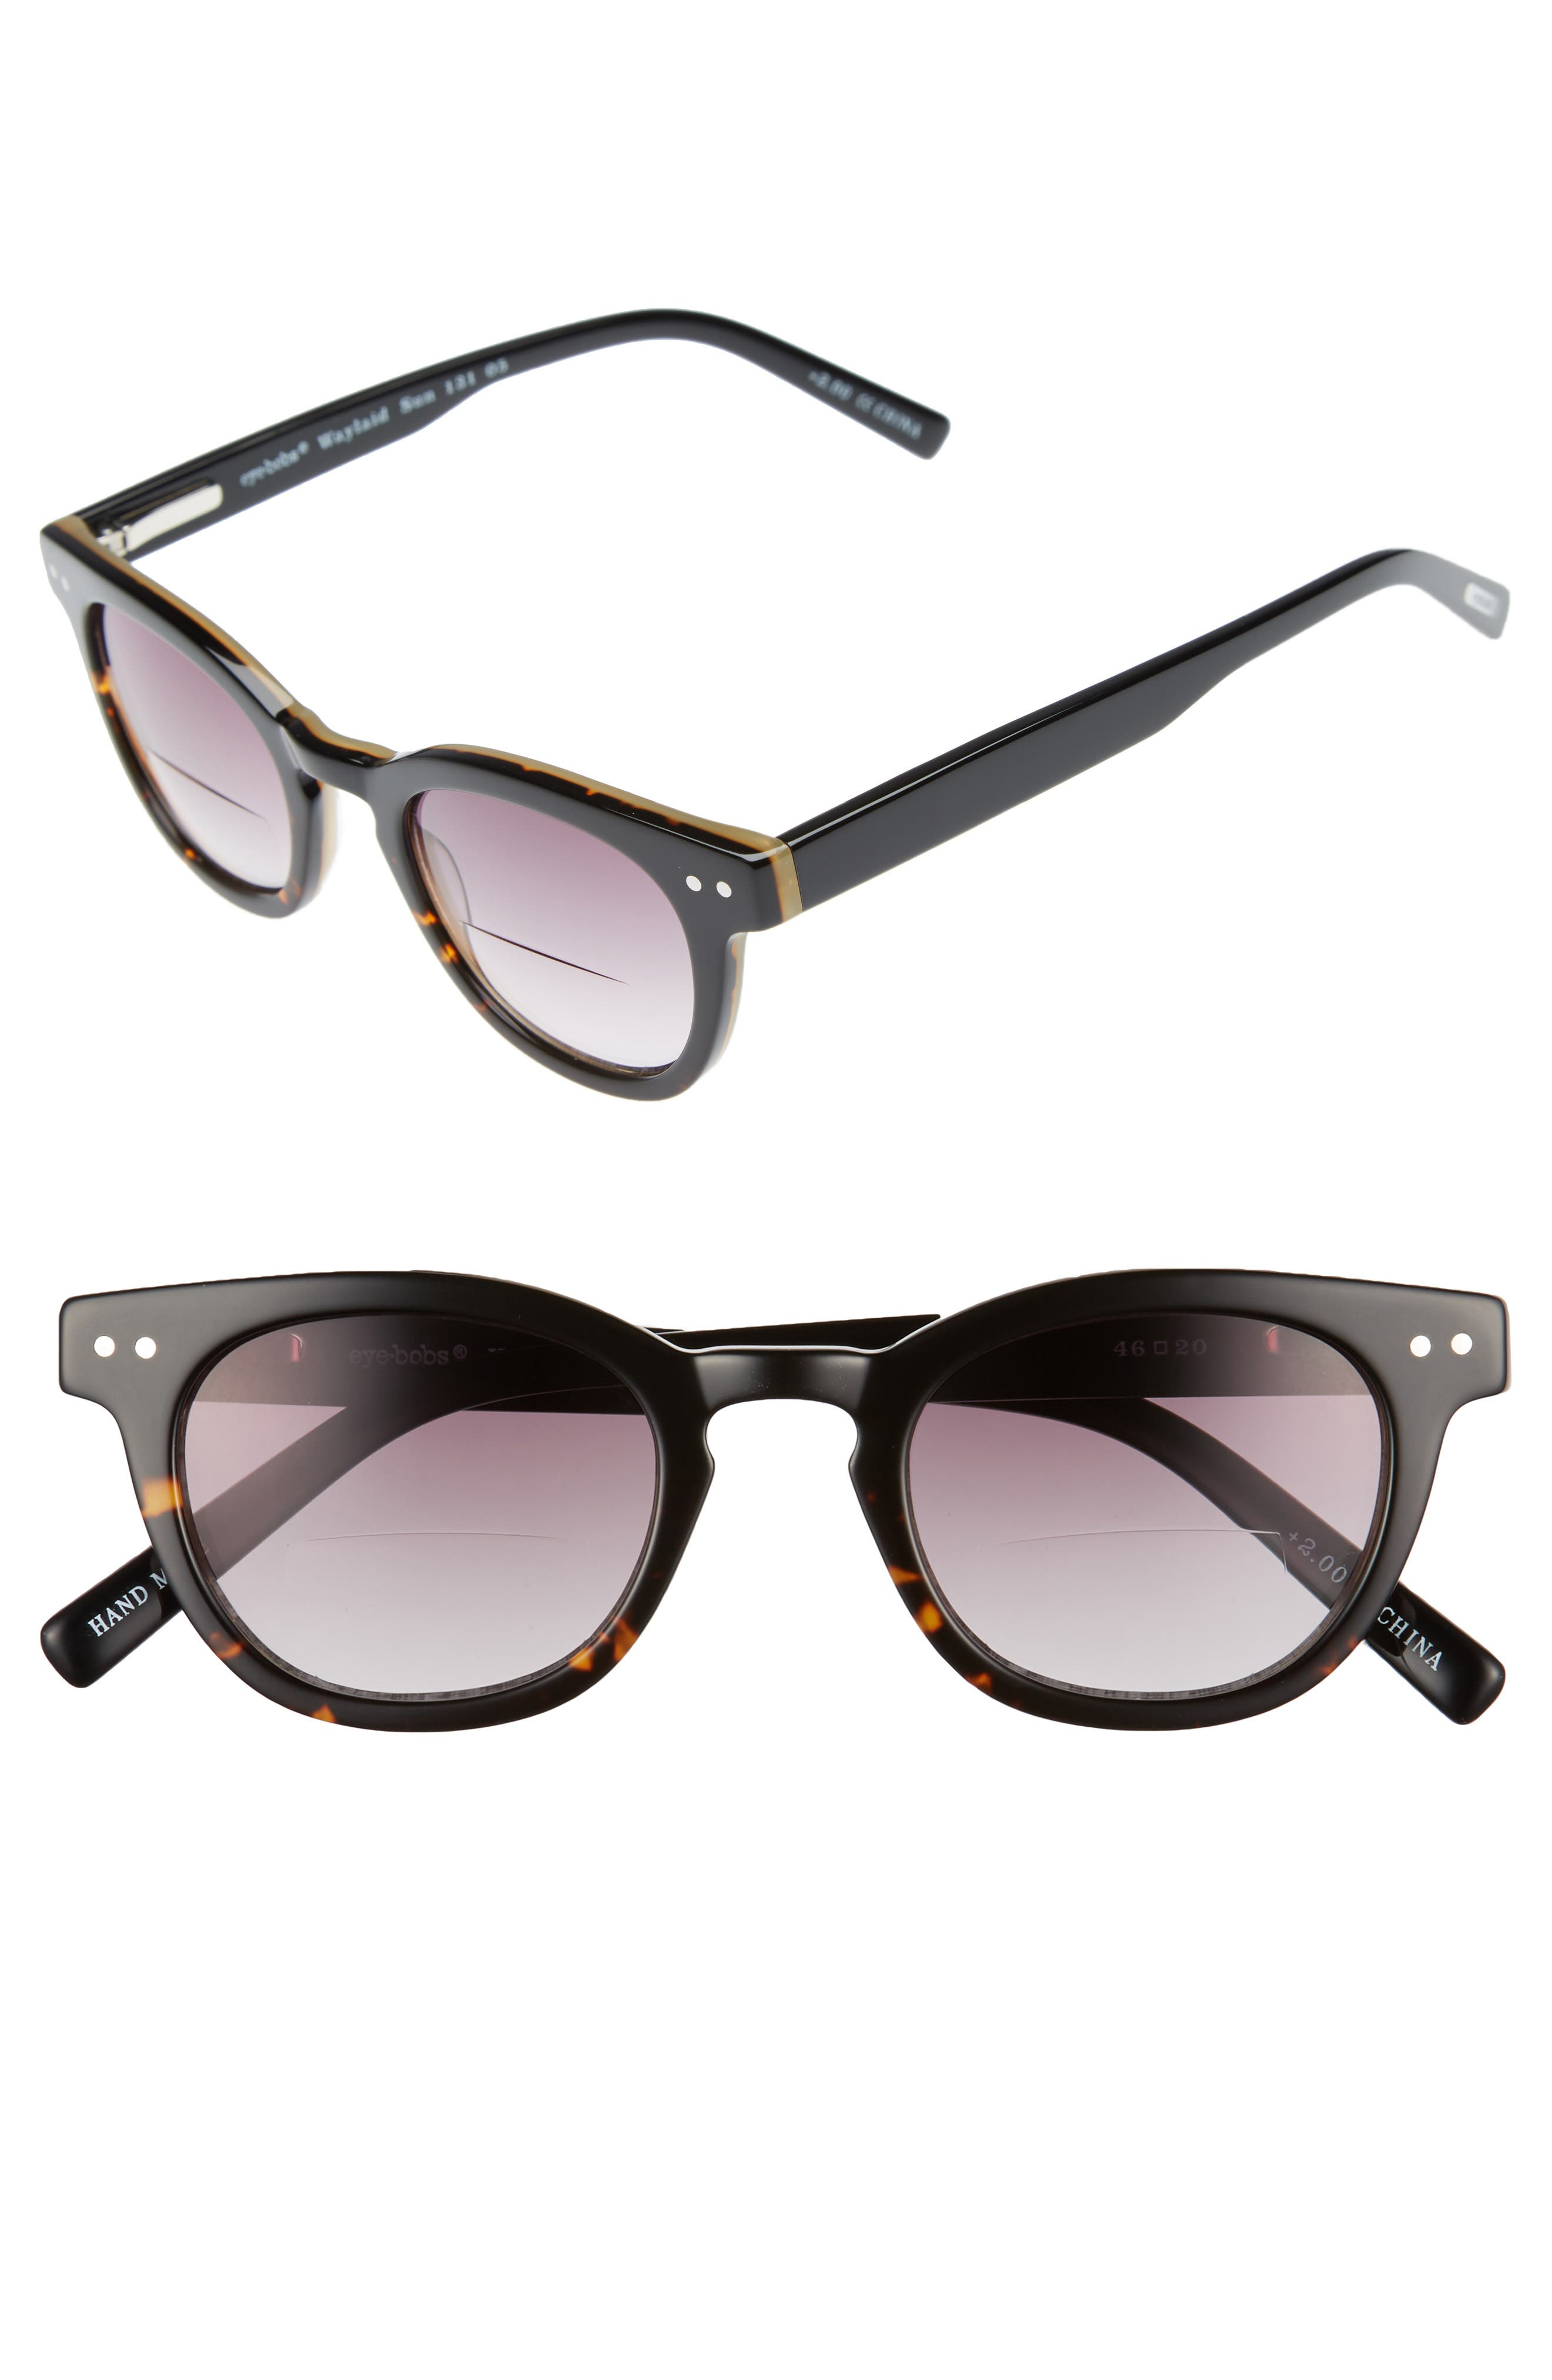 Laid 46mm Reading Sunglasses,                             Main thumbnail 1, color,                             Tortoise With Black